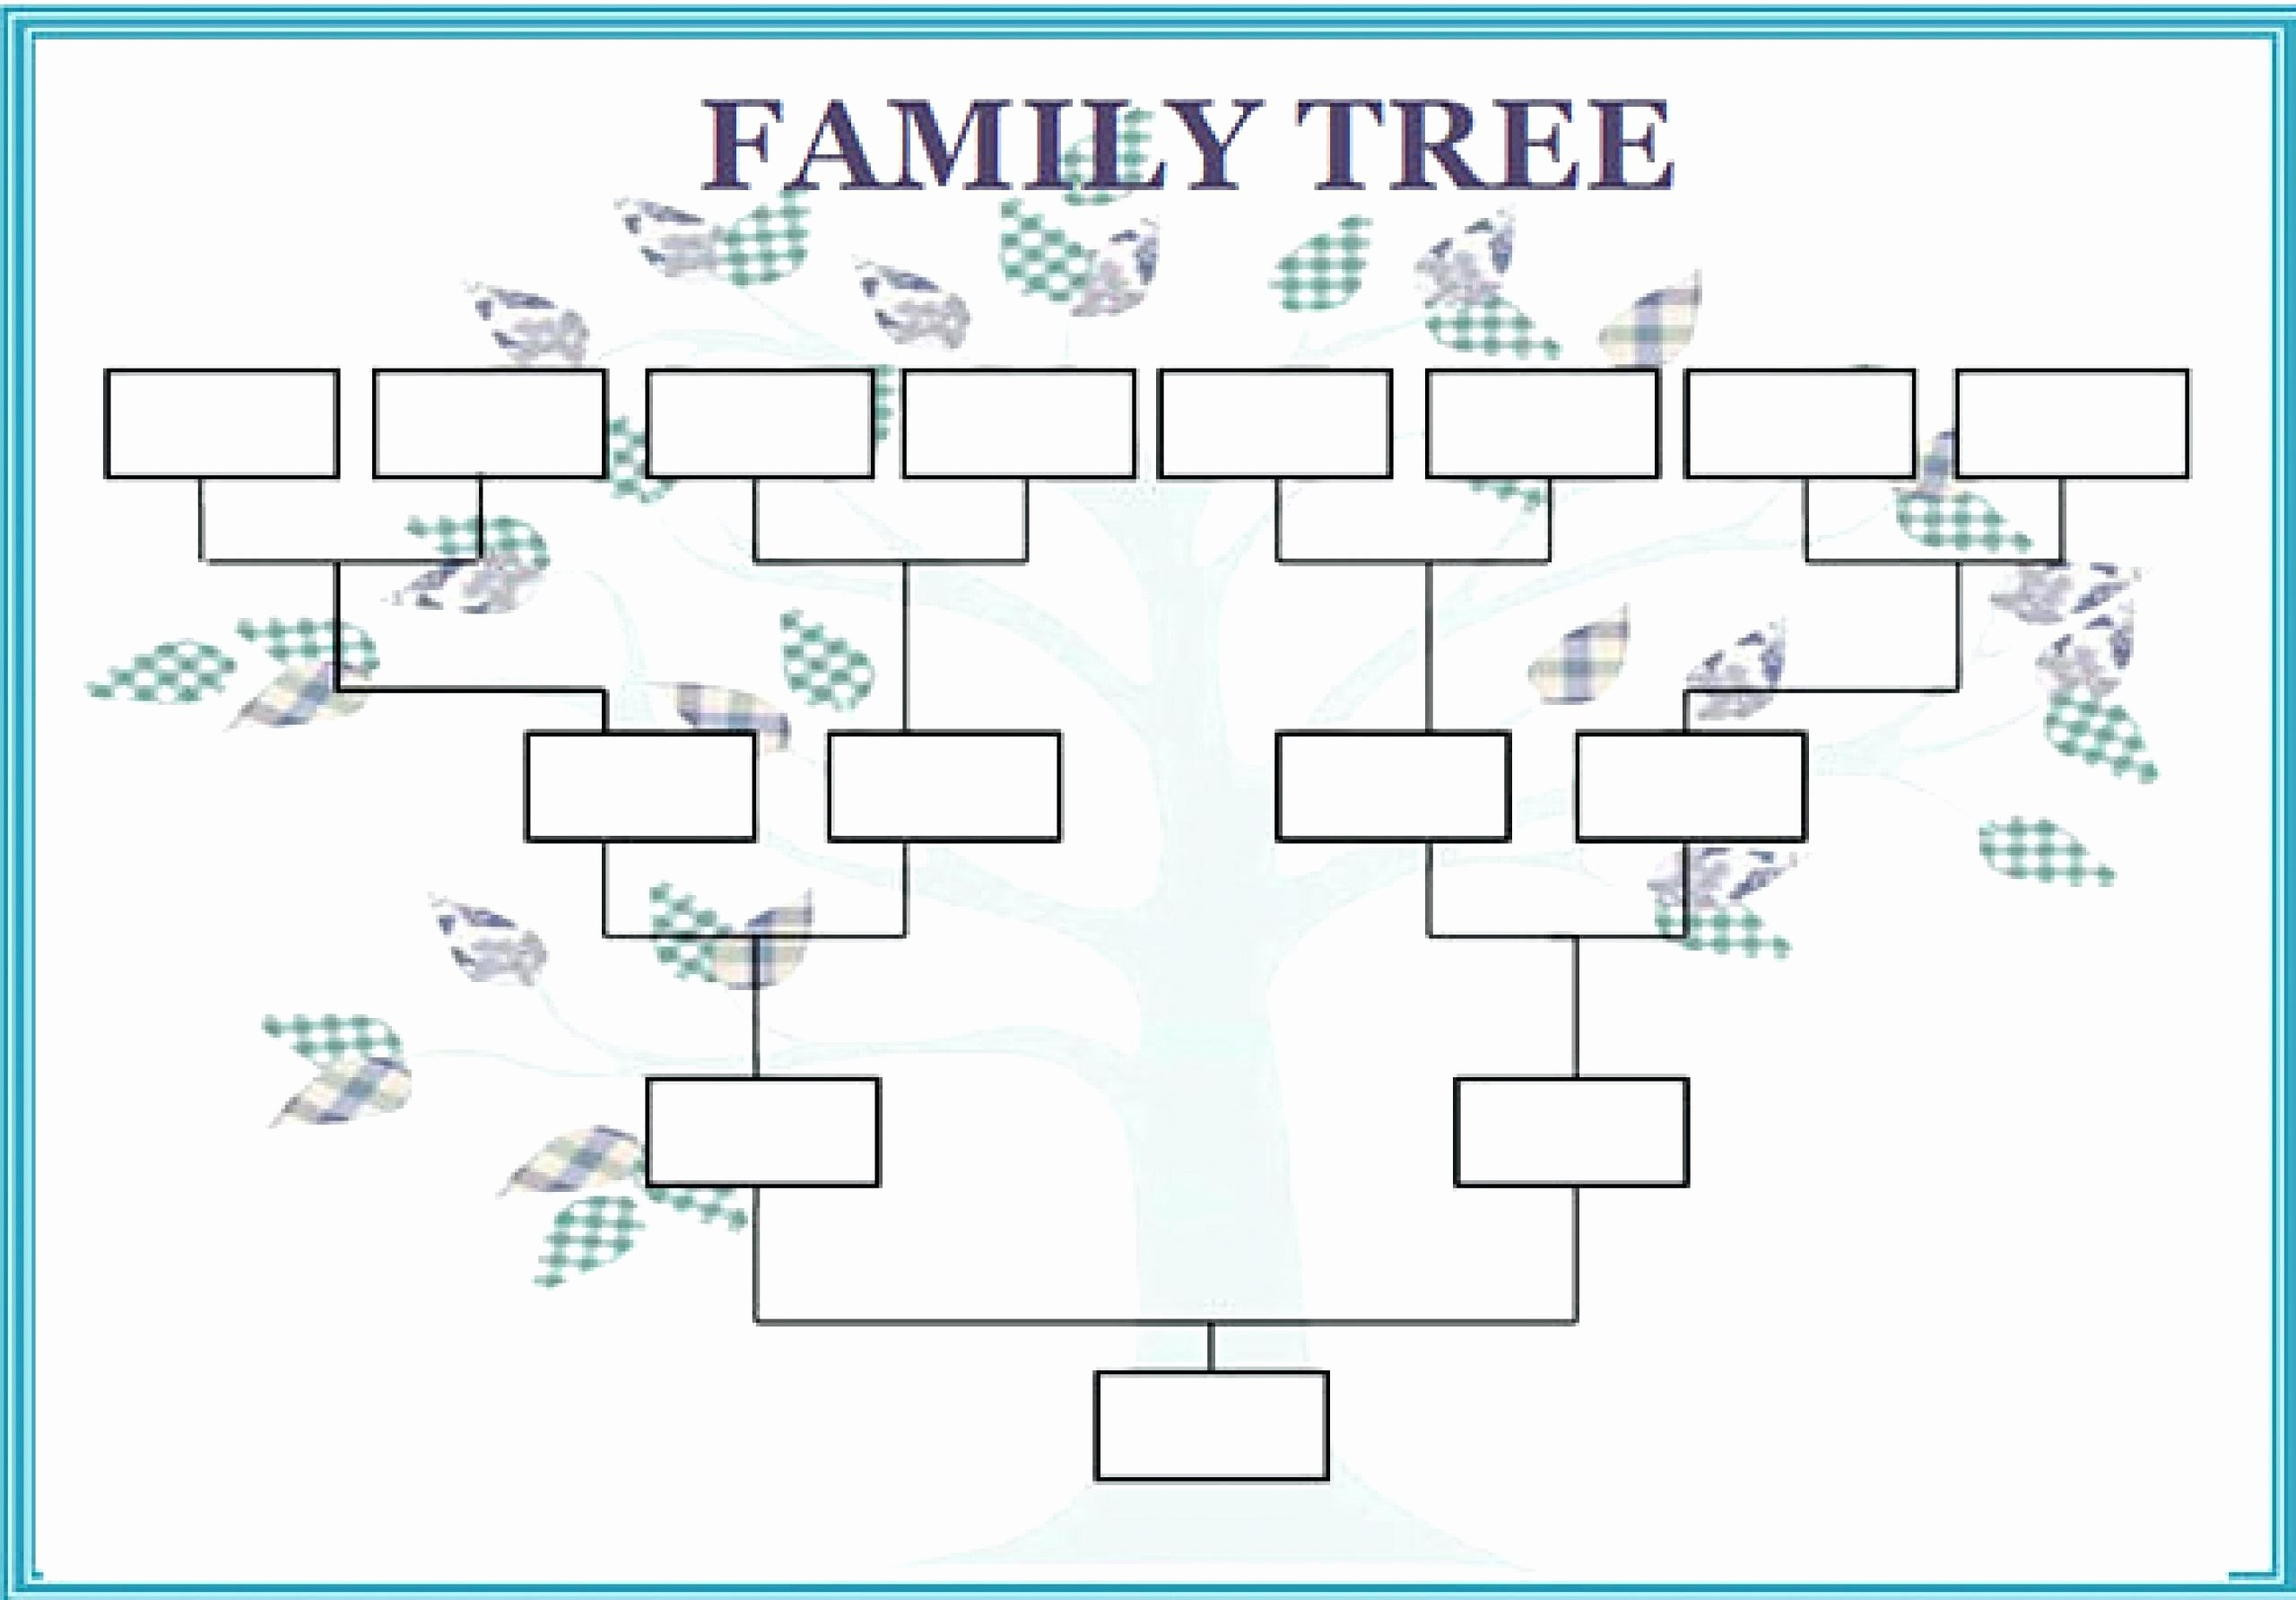 Family Tree Template with Siblings Fresh 12 13 Family Tree Spreadsheet Template